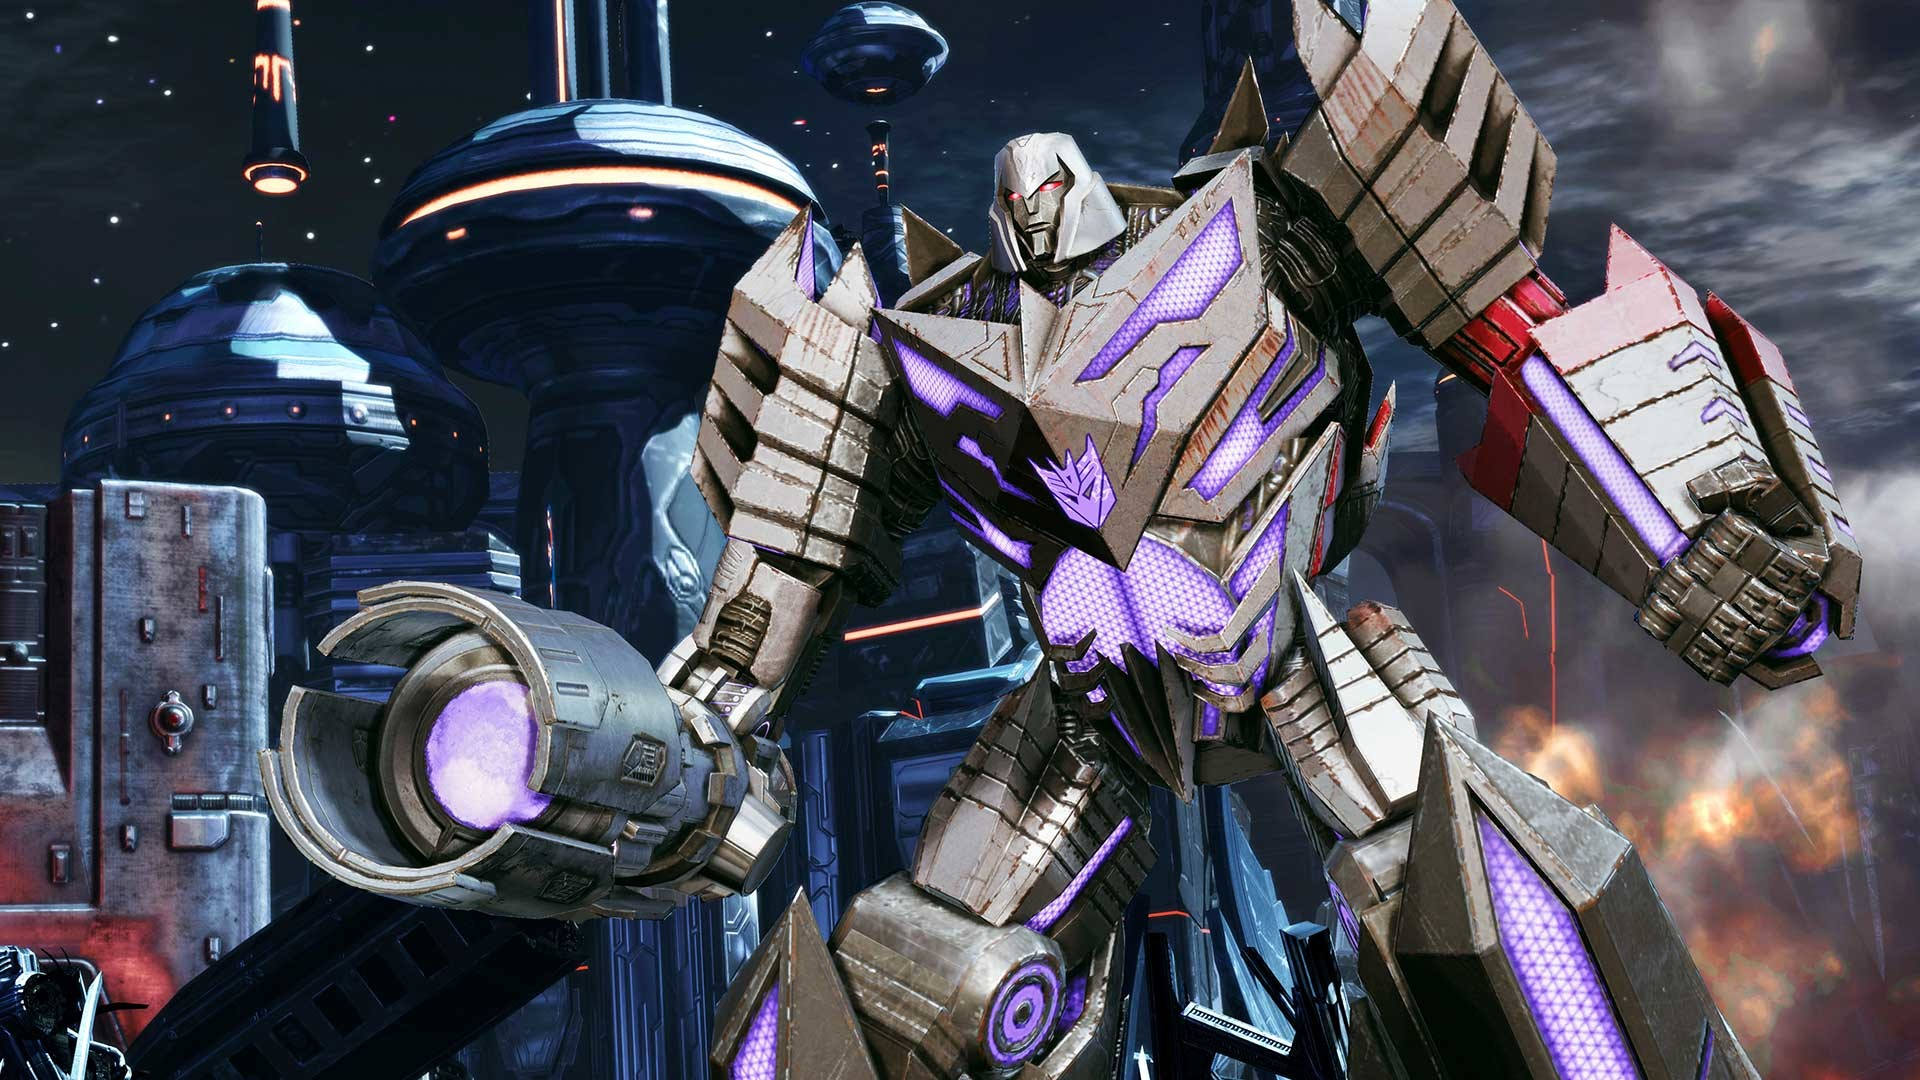 Transformers Fall Of Cybertron Hd Wallpapers 1080p Transformers Cybertron Wallpaper 80 Images